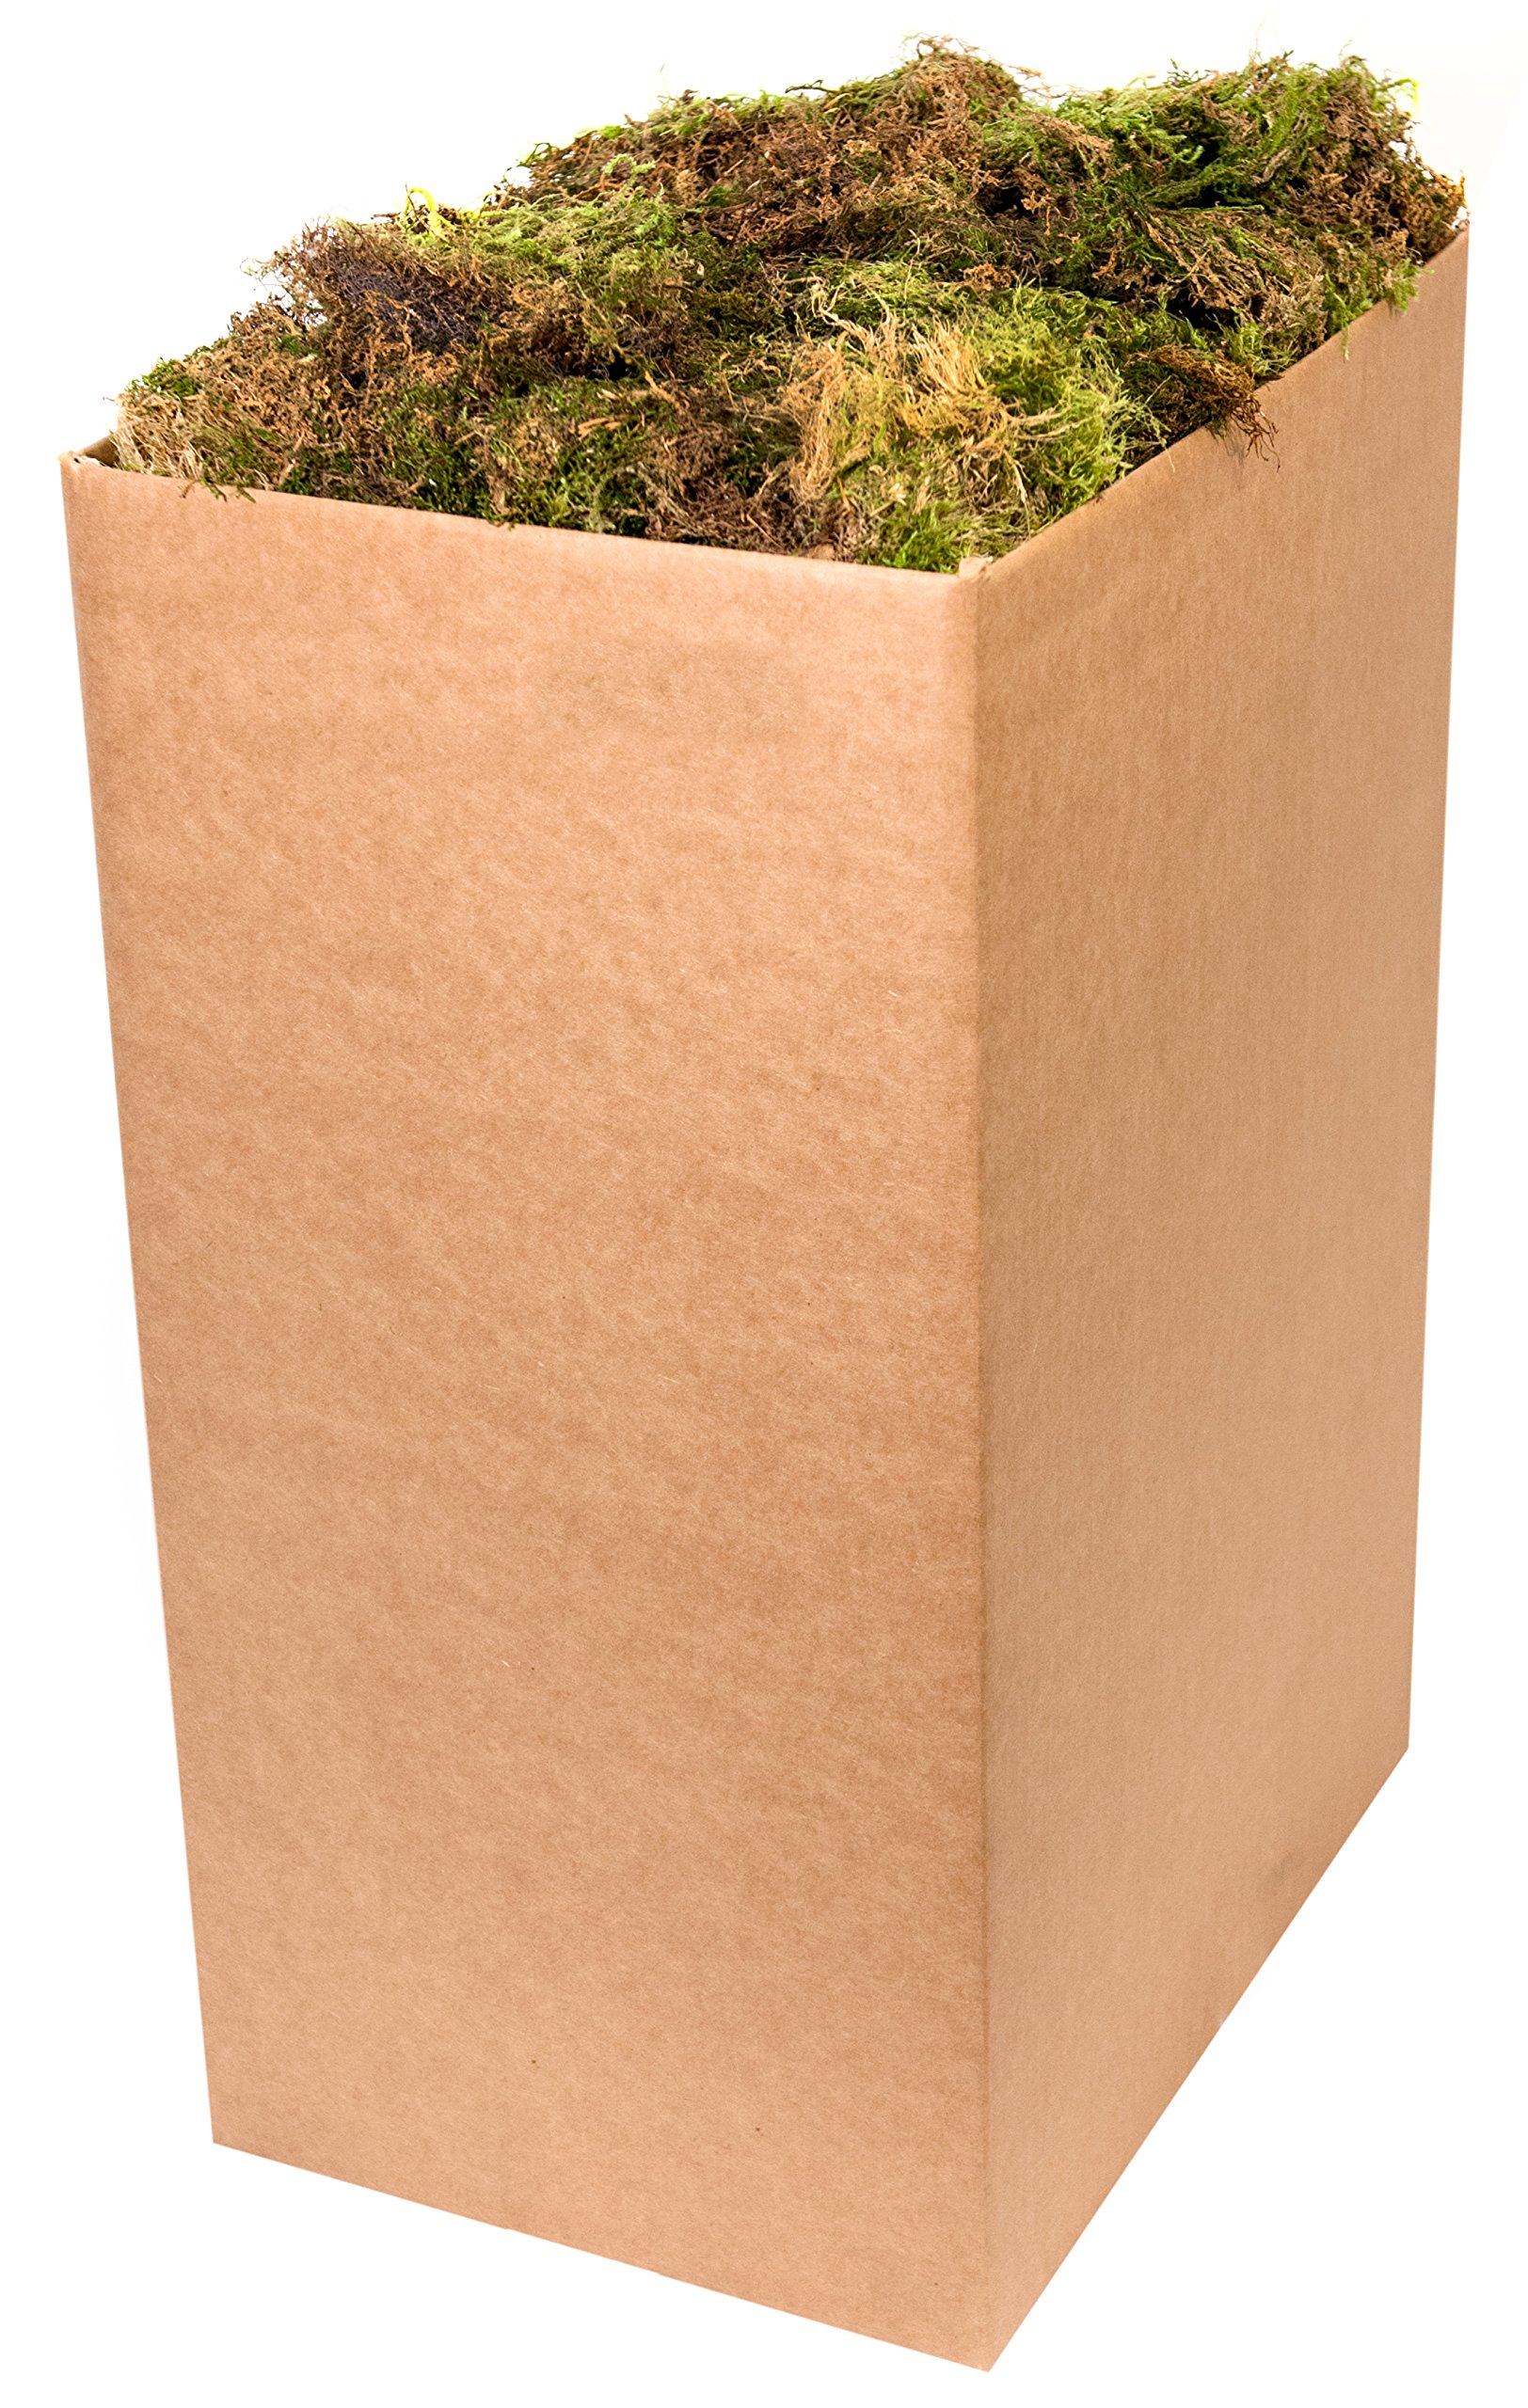 SuperMoss (21704) Forest Moss Dried, Natural, 10lbs